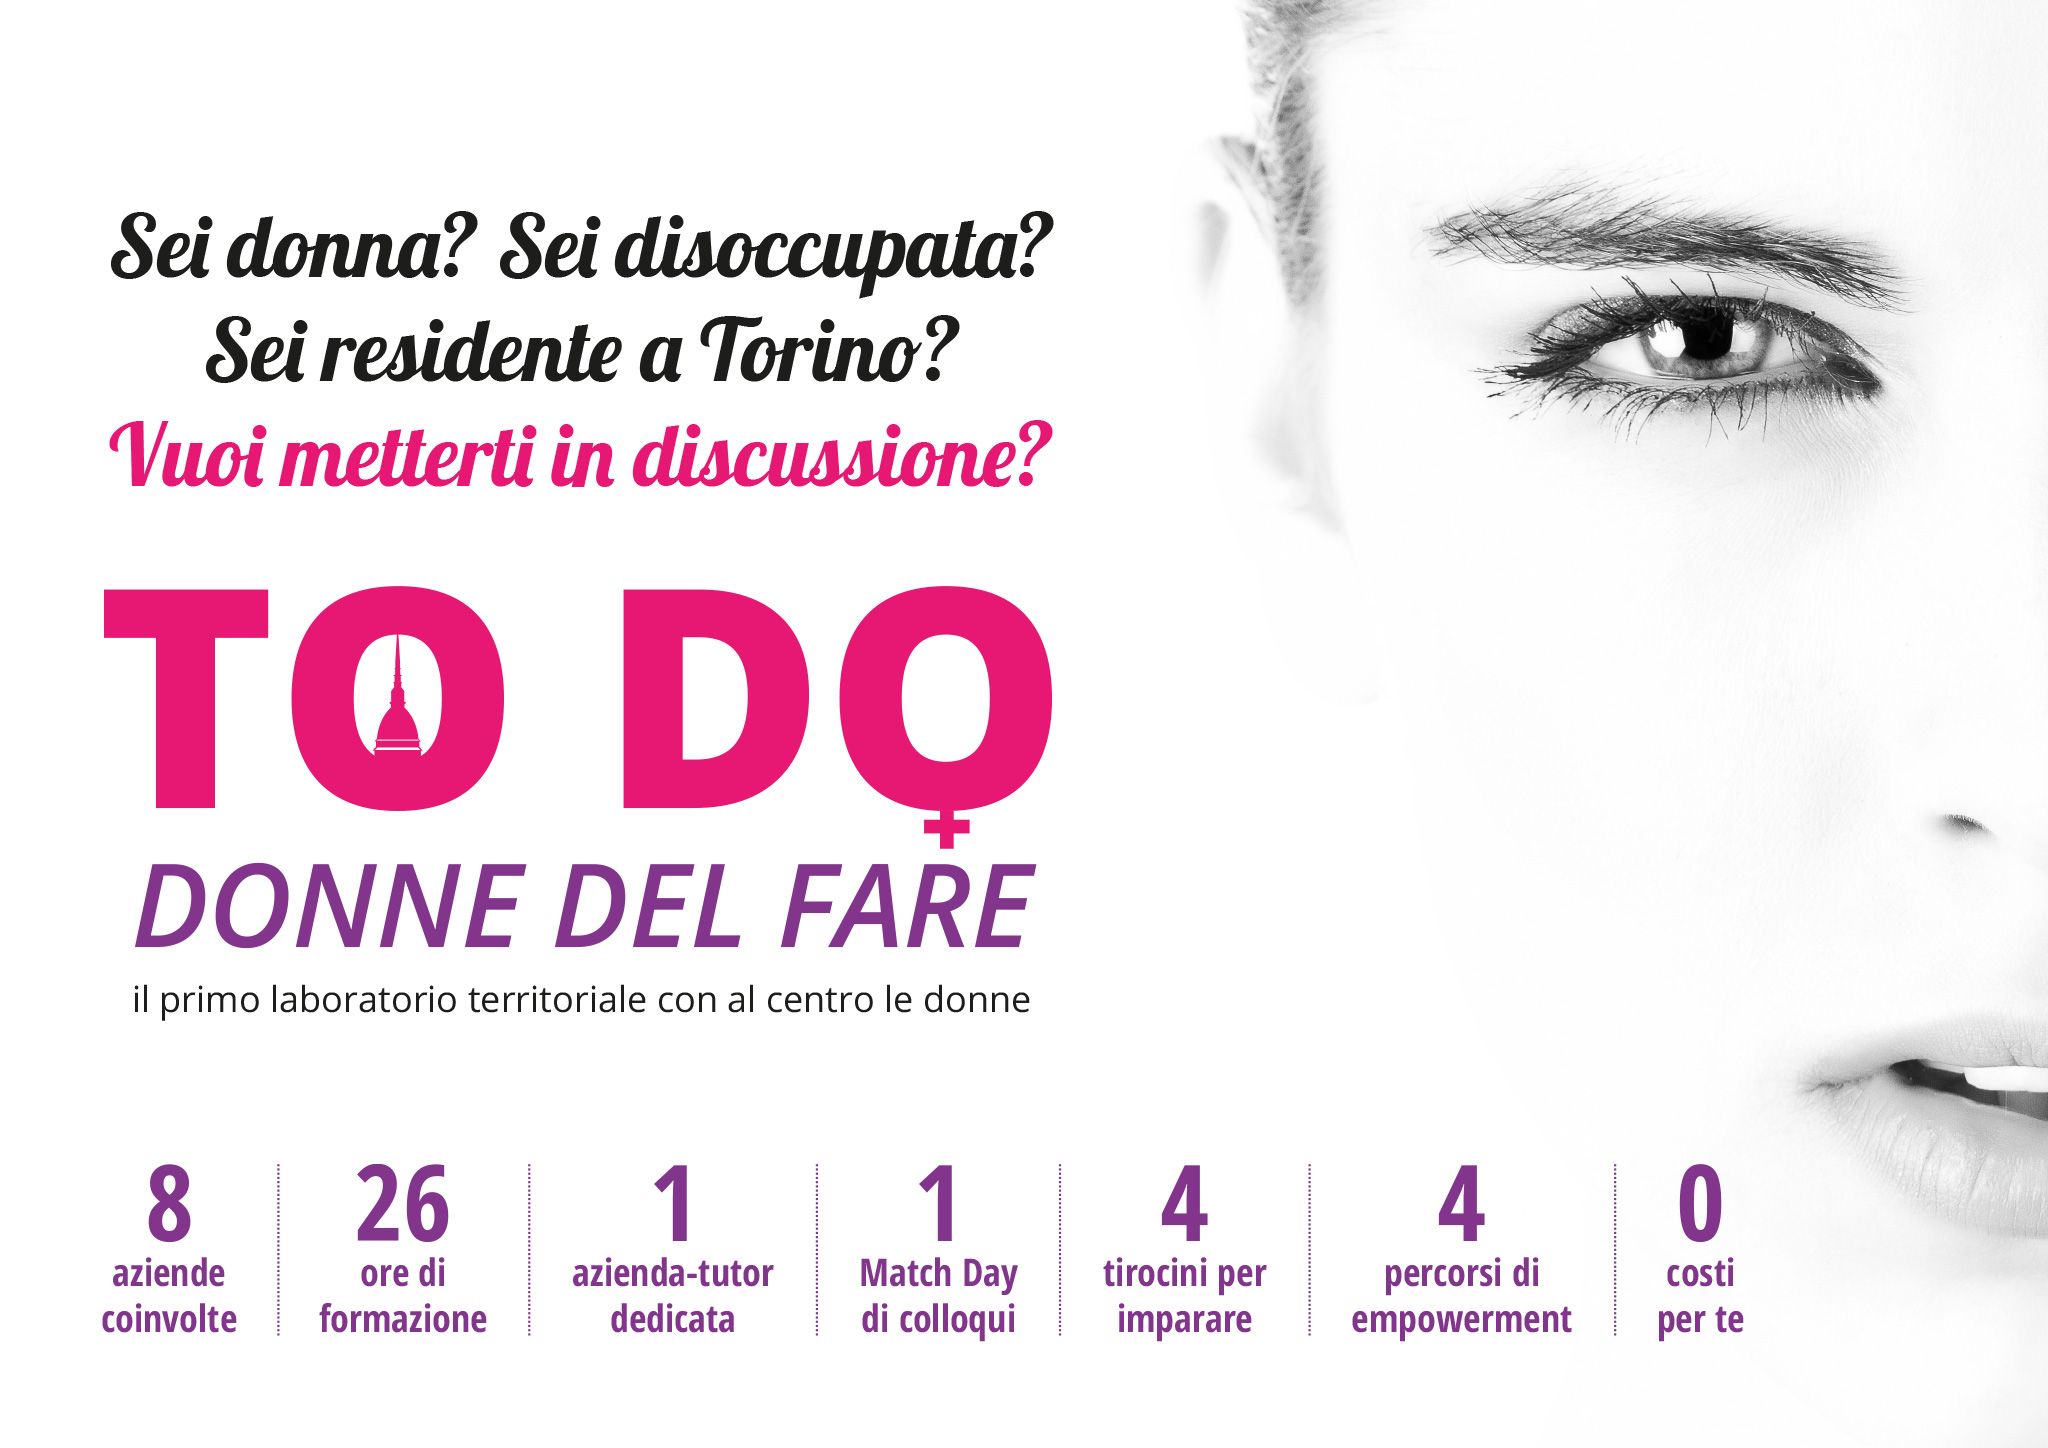 To Do - donne del fare